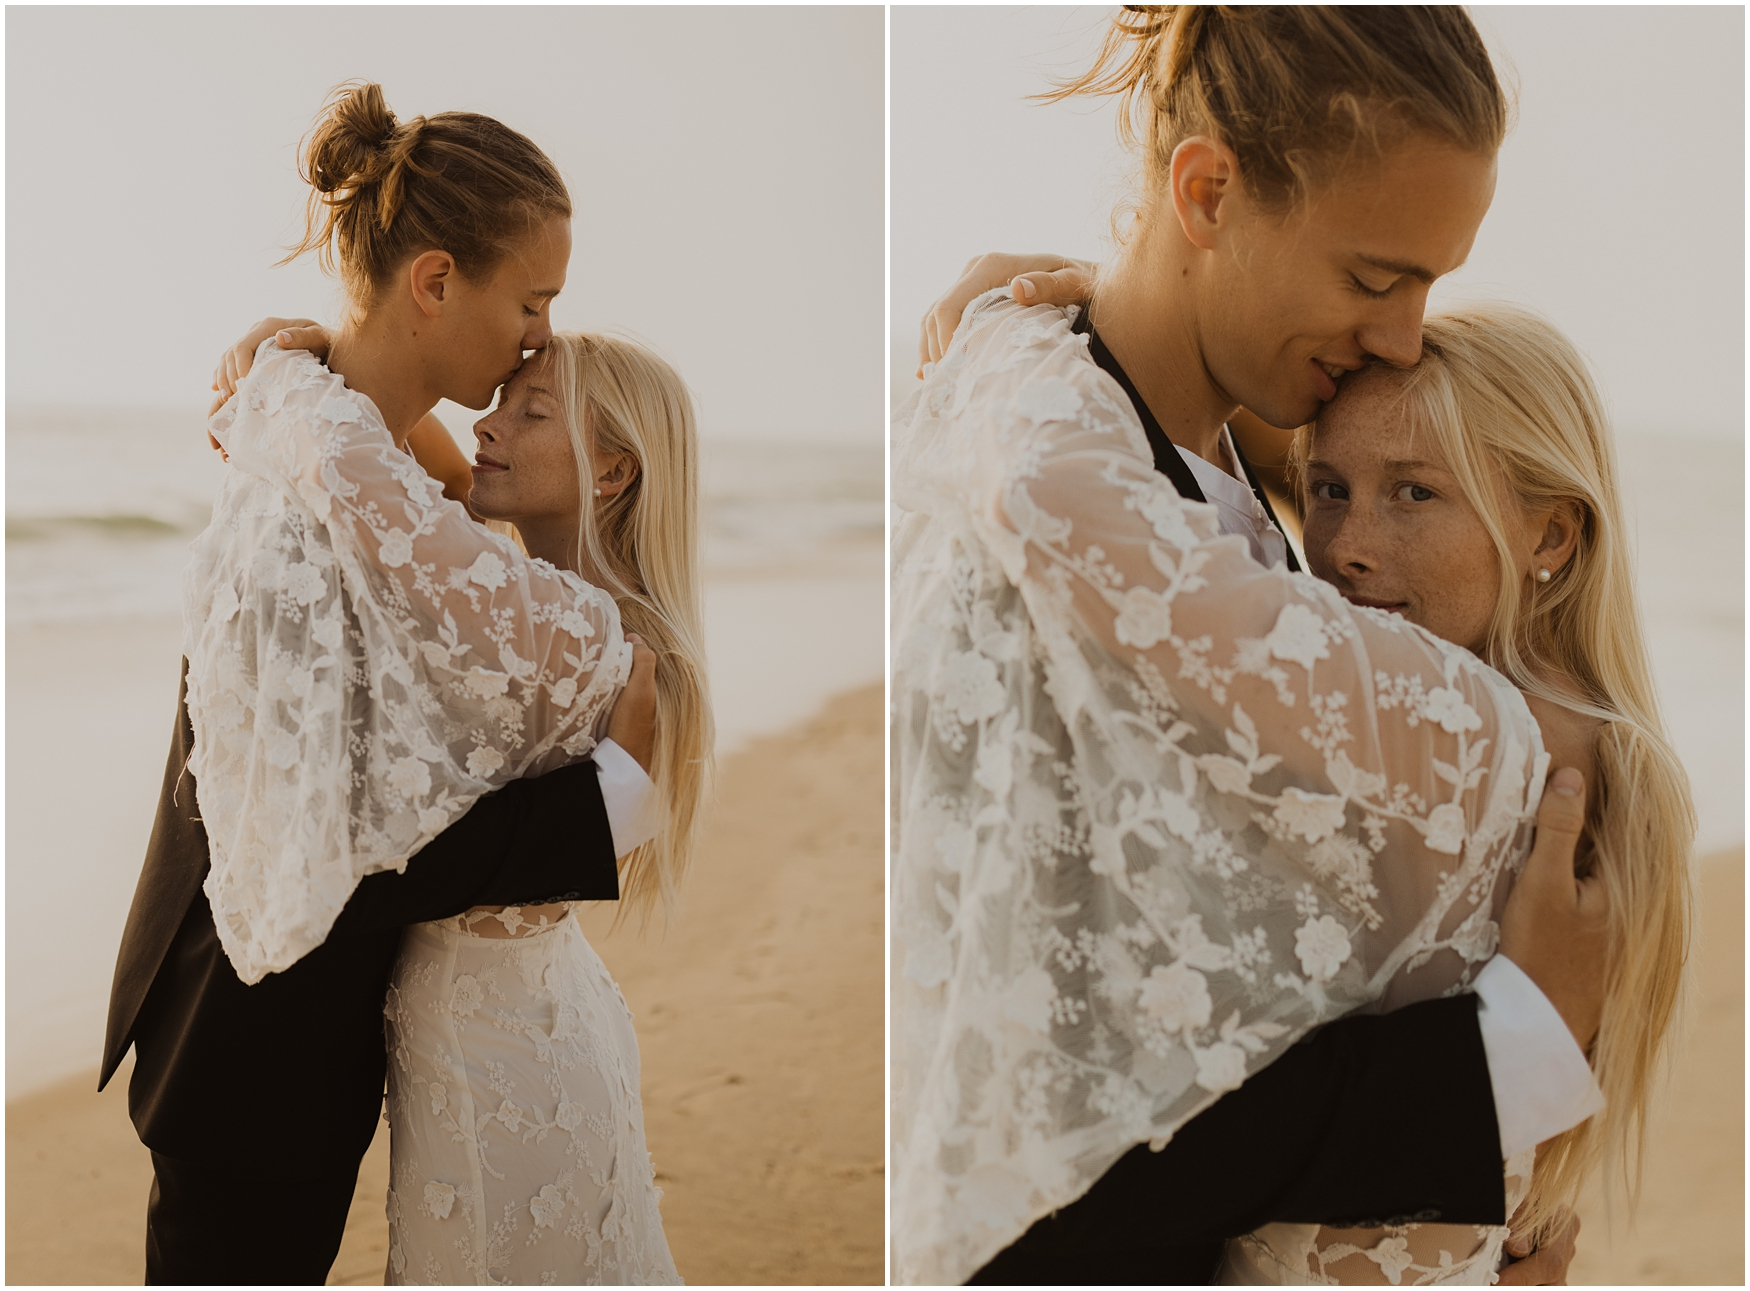 Hannah_Baldwin_Photography_Virginia_Beach_Elopement_Sunrise_0179.jpg